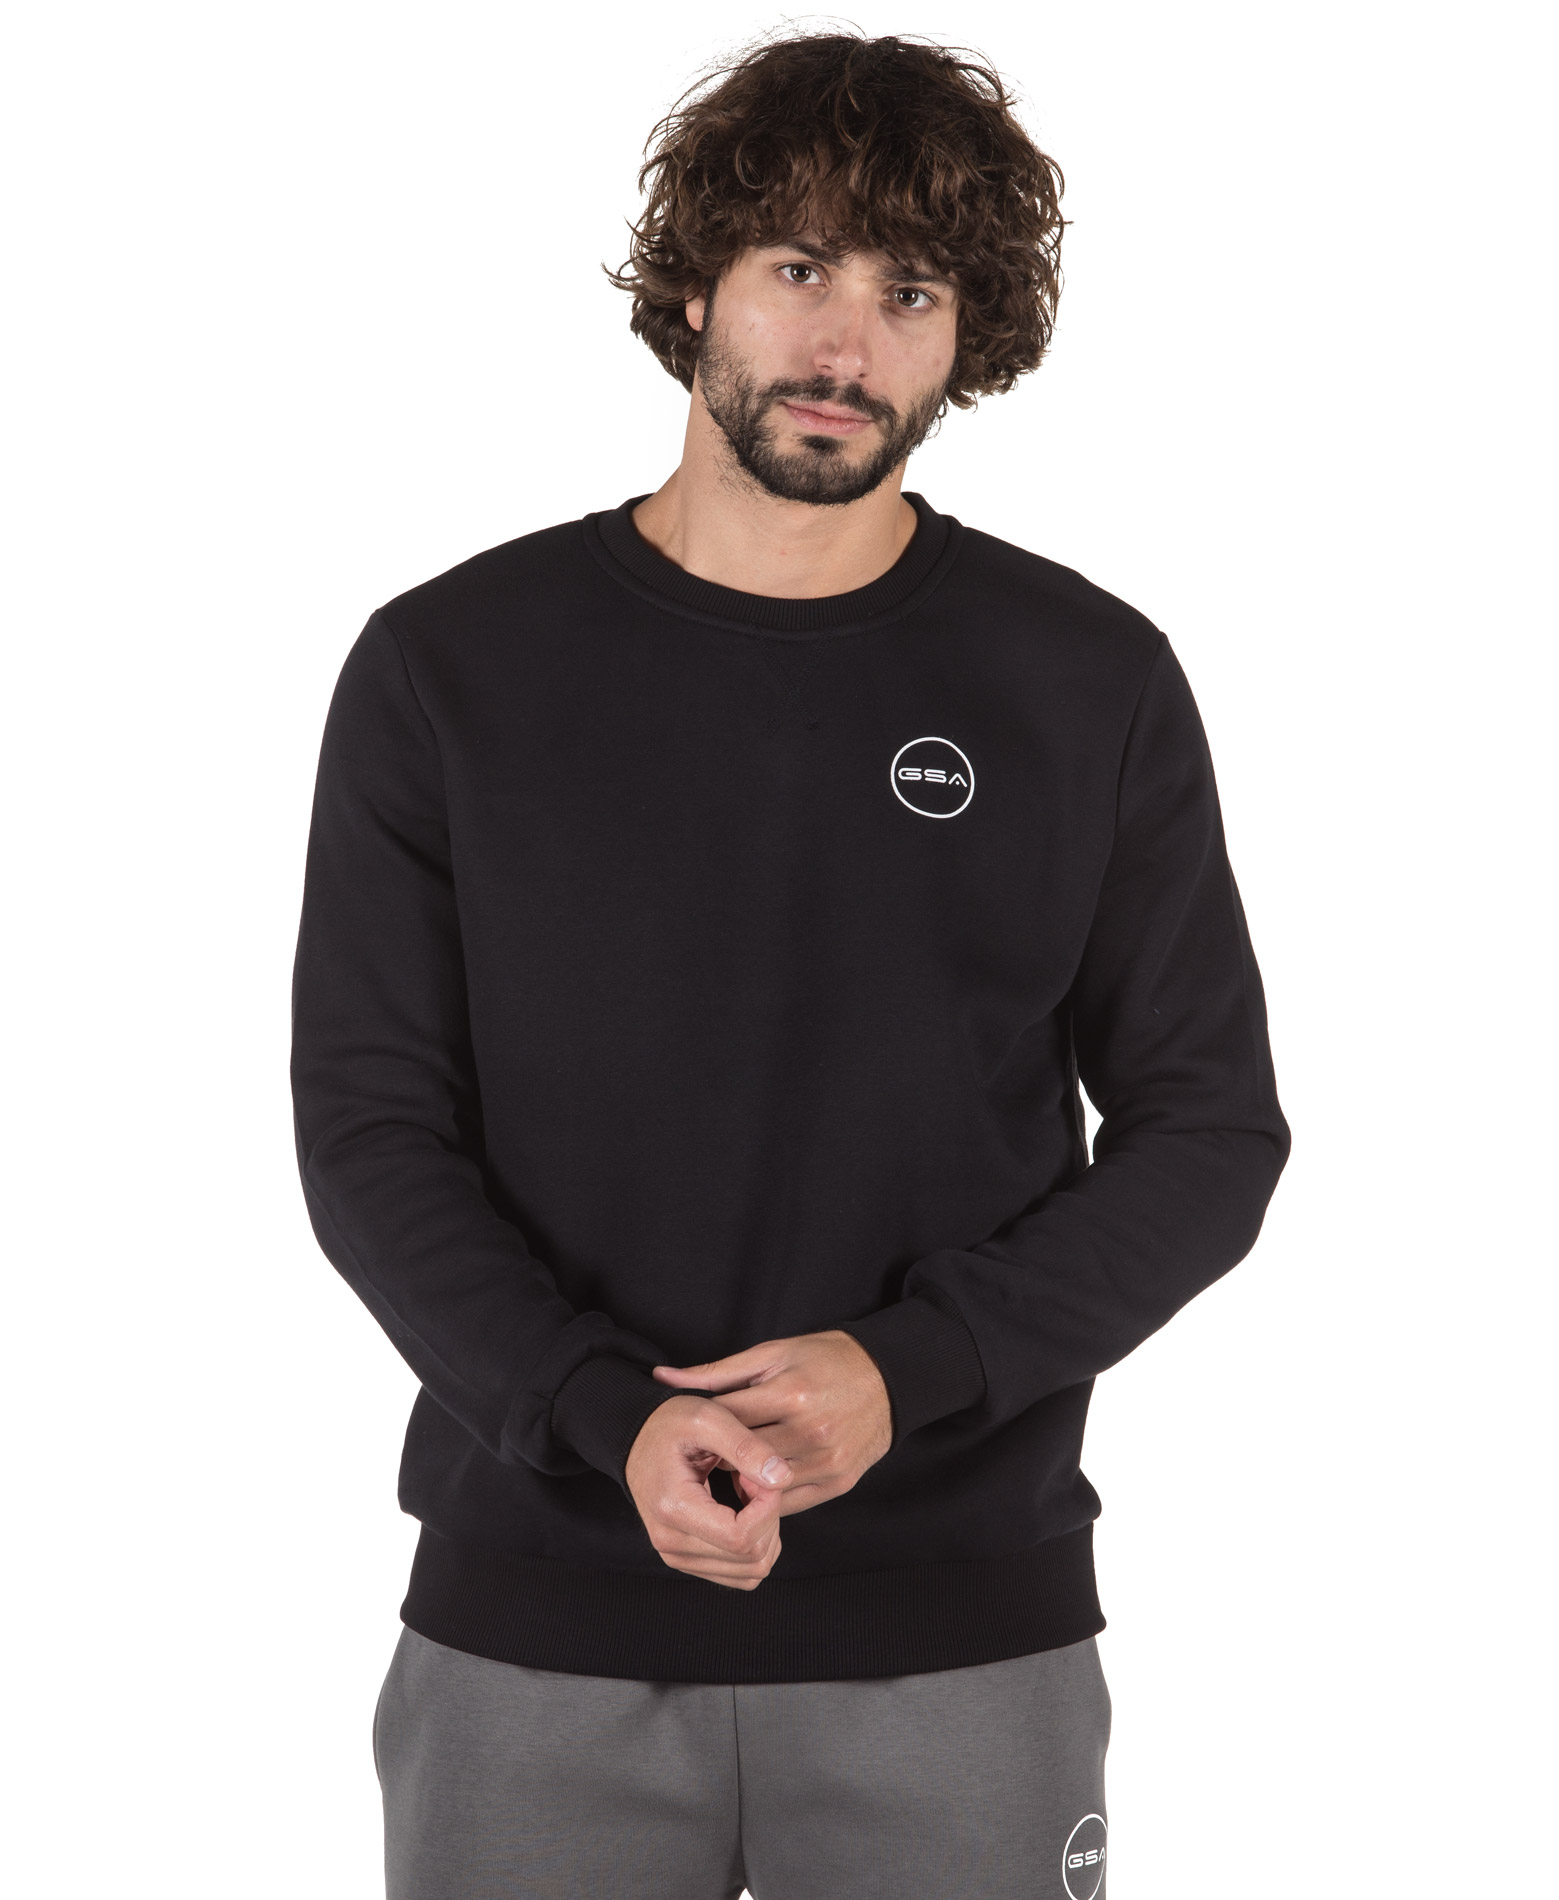 GSA SUPERCOTTON LONG SLEEVE CREW NECK 17-17025-01 JET BLACK Μαύρο